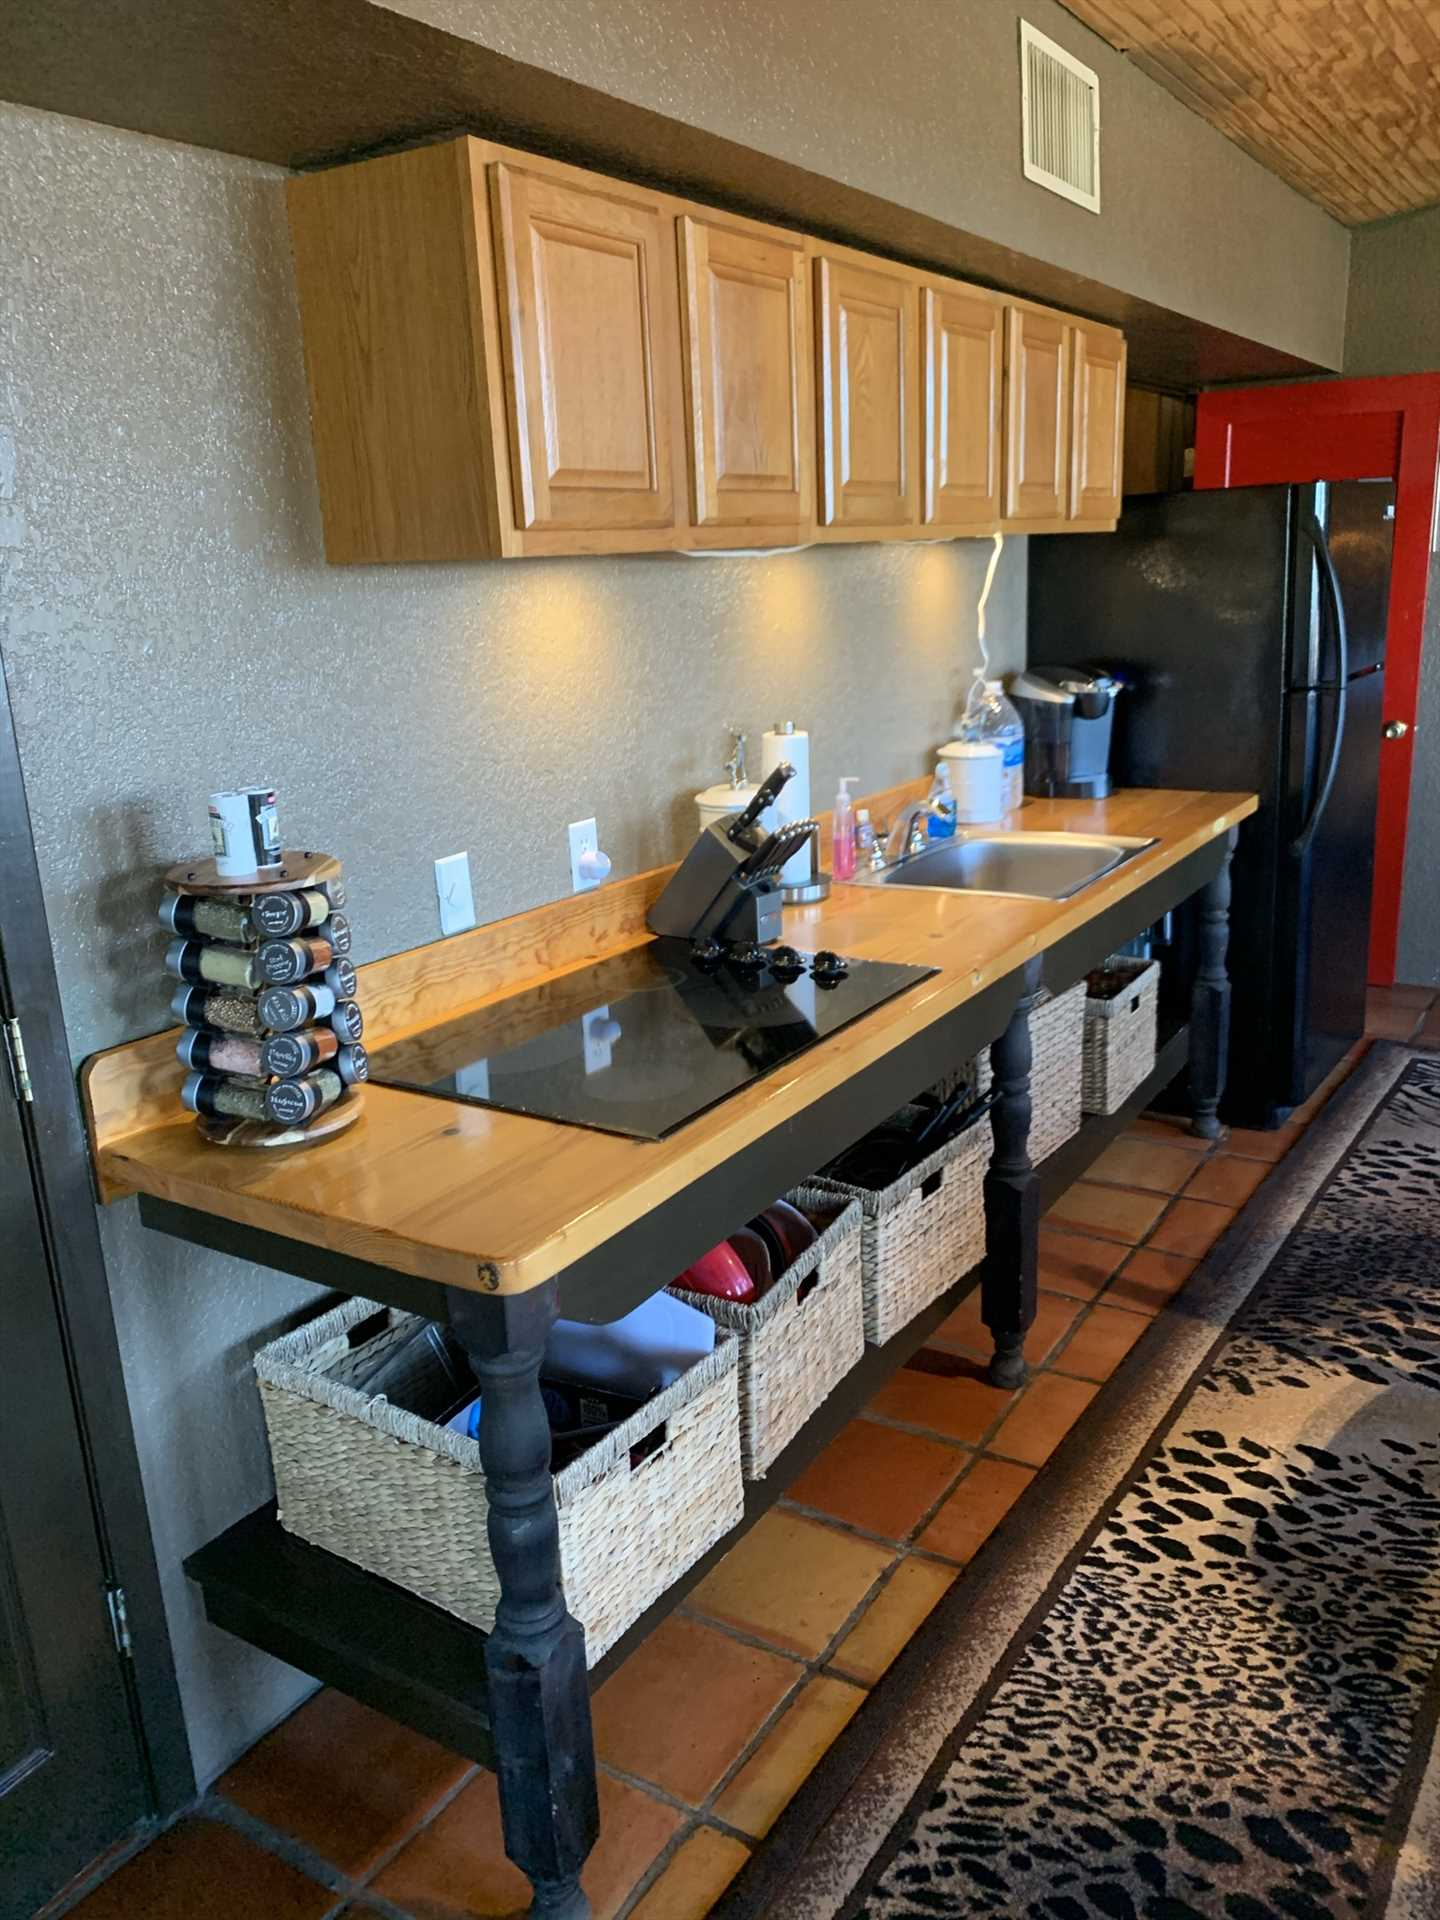 All the cookware, utensils, and serving ware are in the full kitchen, all you'll need for a hearty family meal!